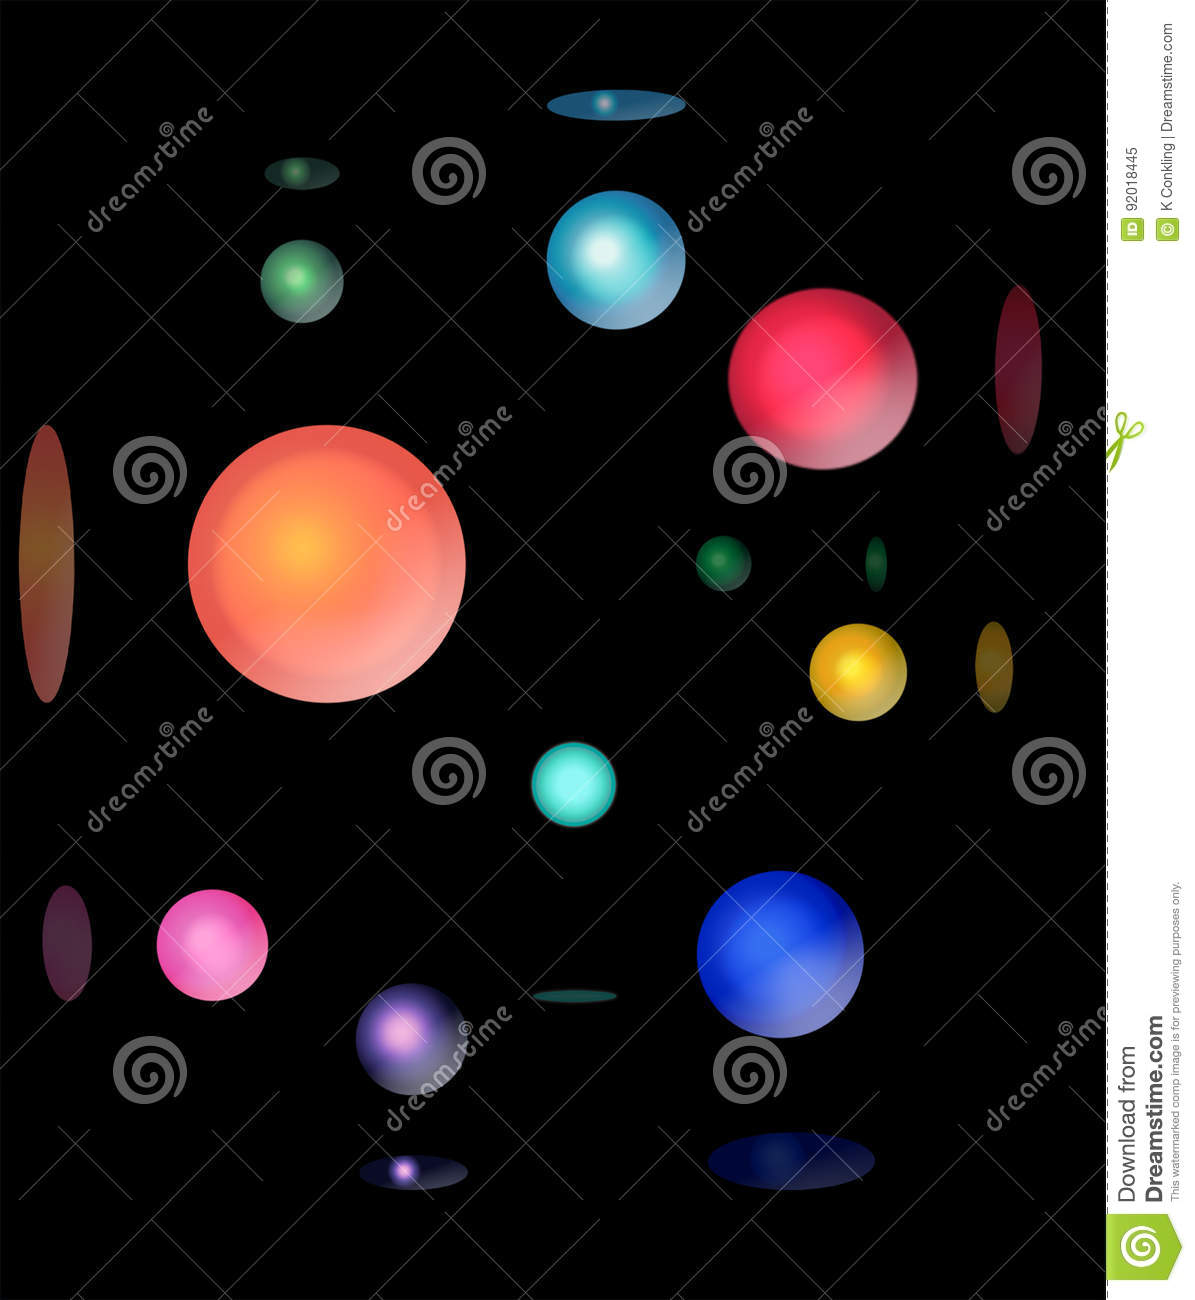 a graphic design of a black background with 3d balls of different